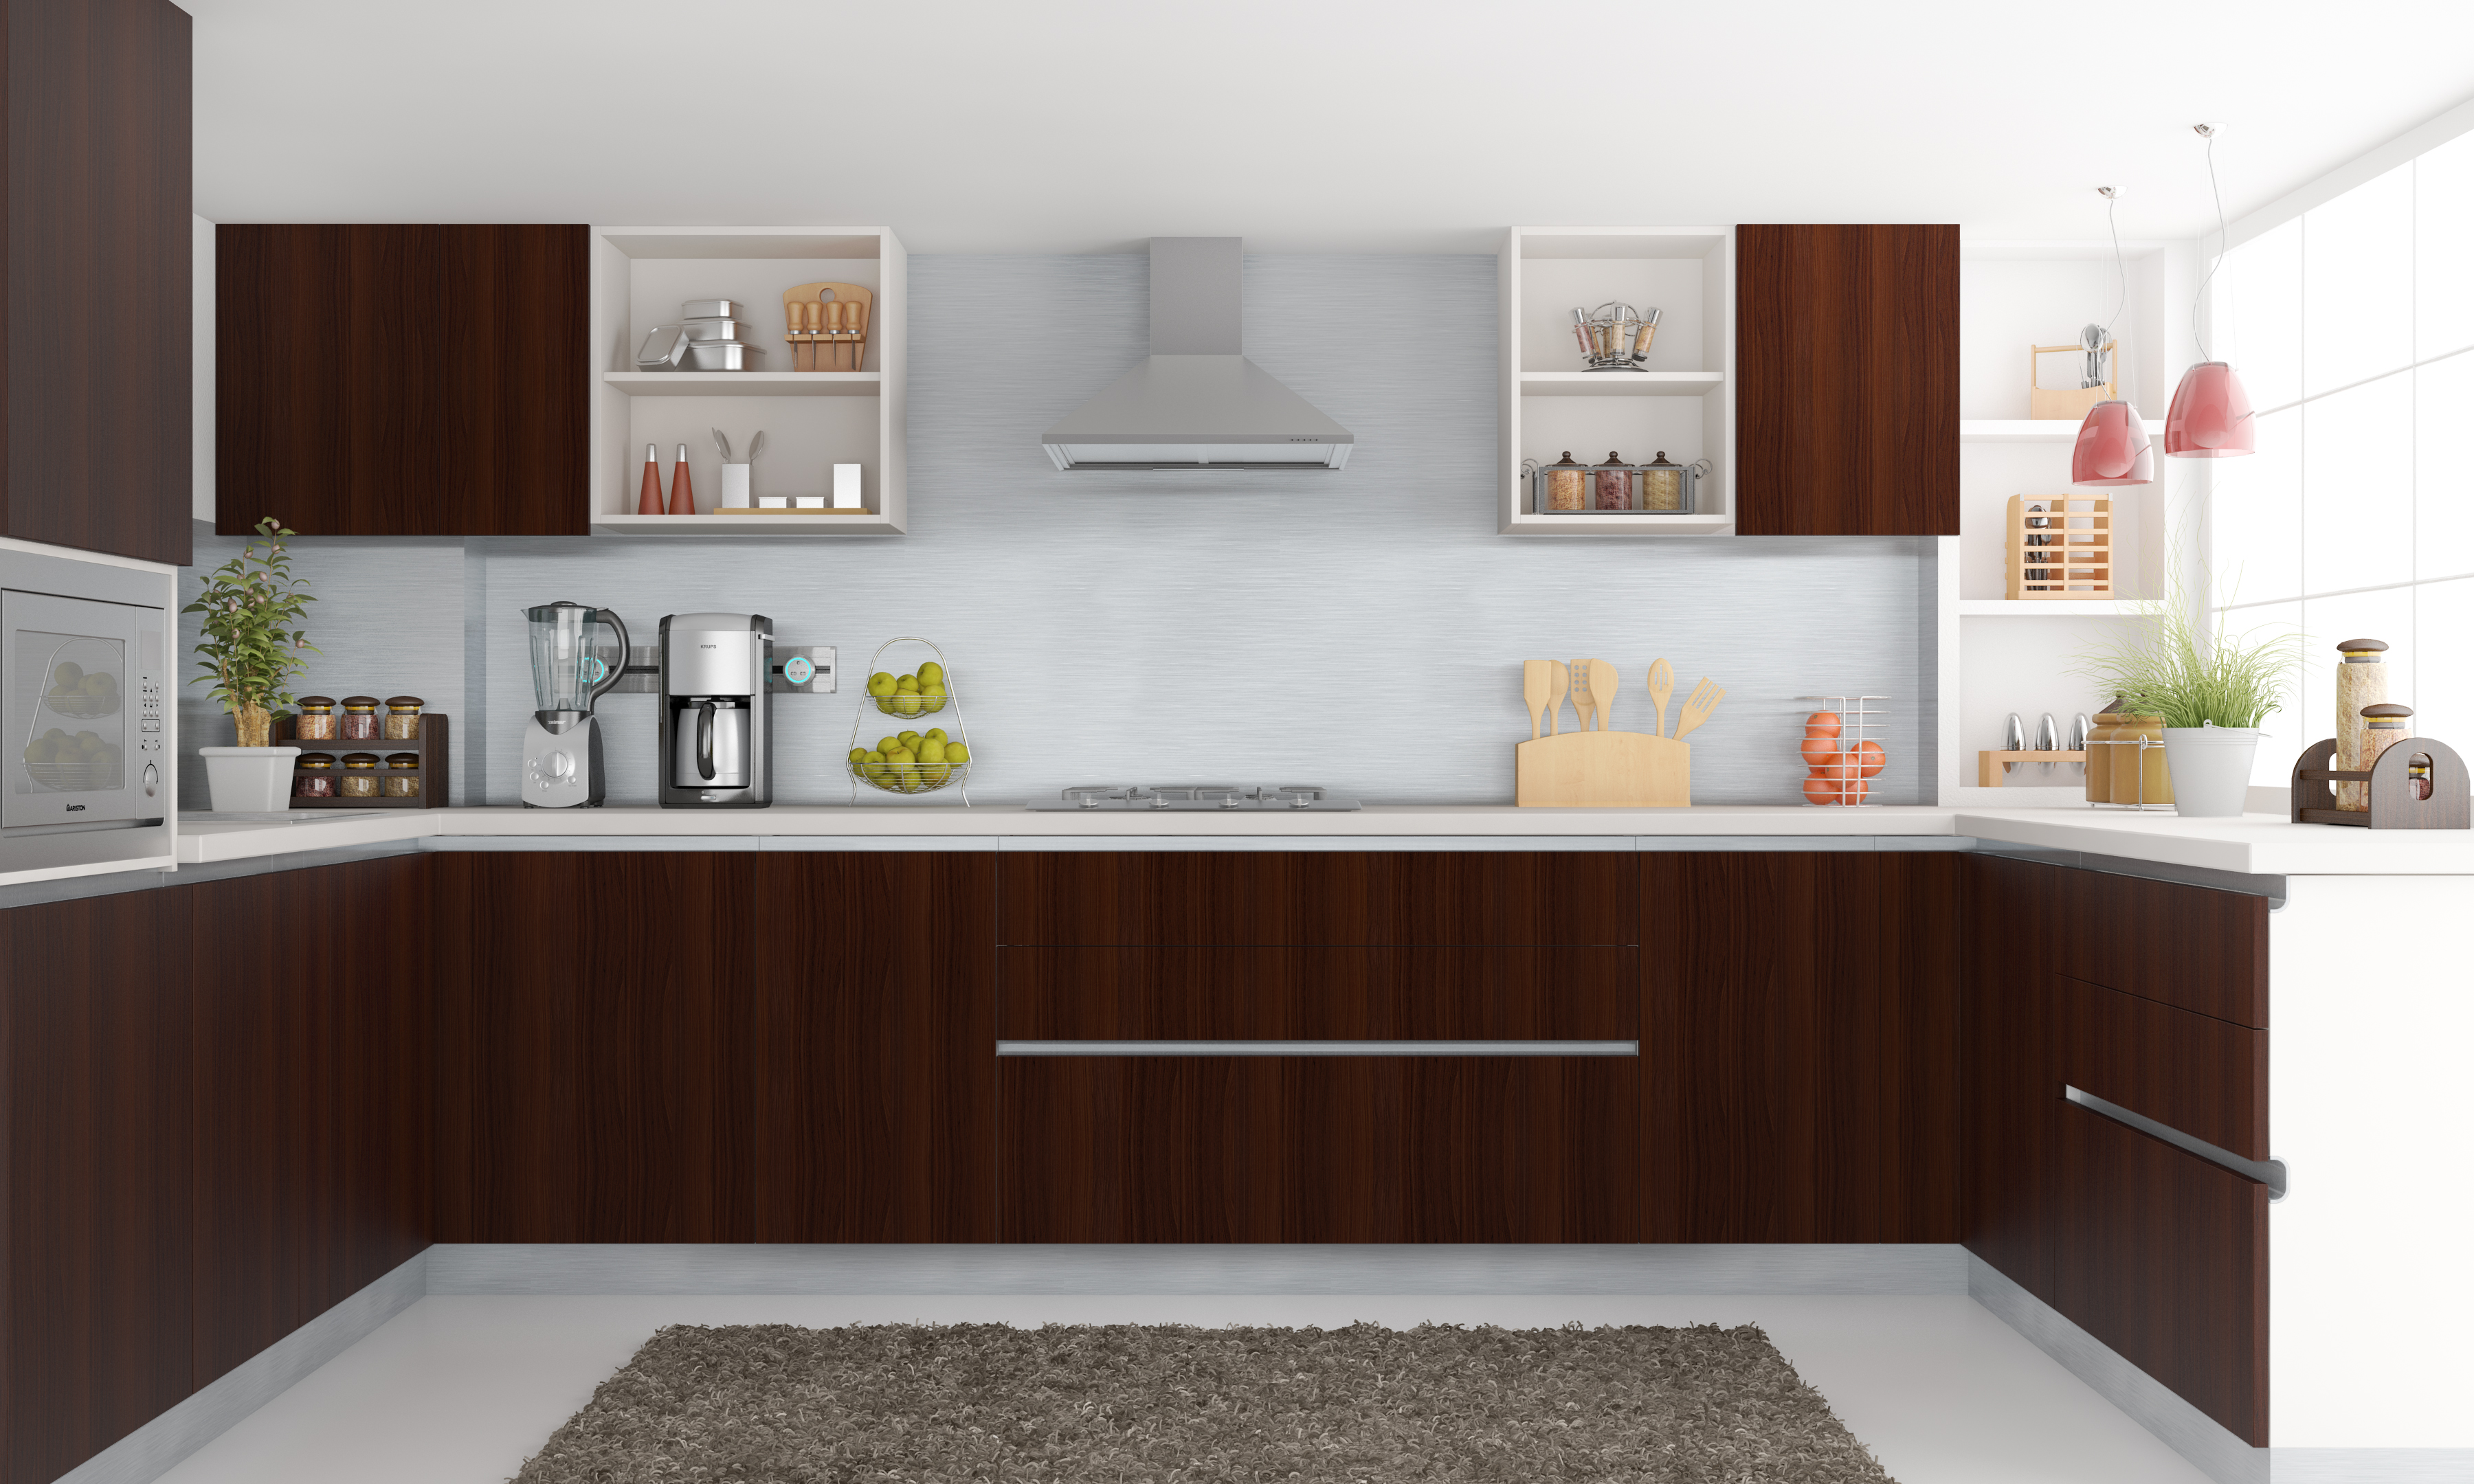 Modular Kitchen With Full Functionality And Beautiful